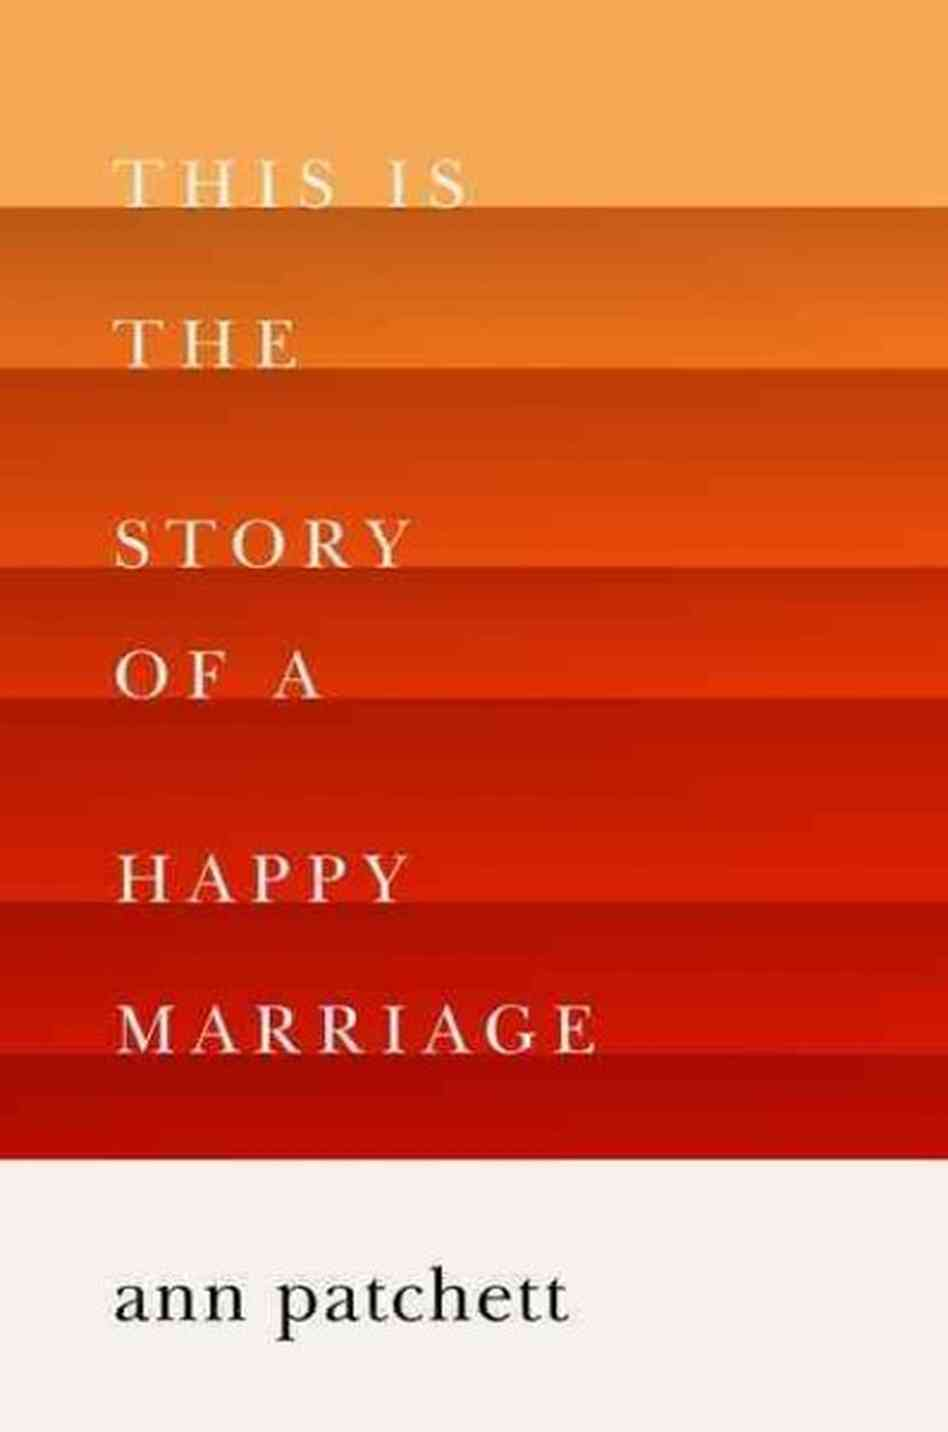 Short essay about happy marriage